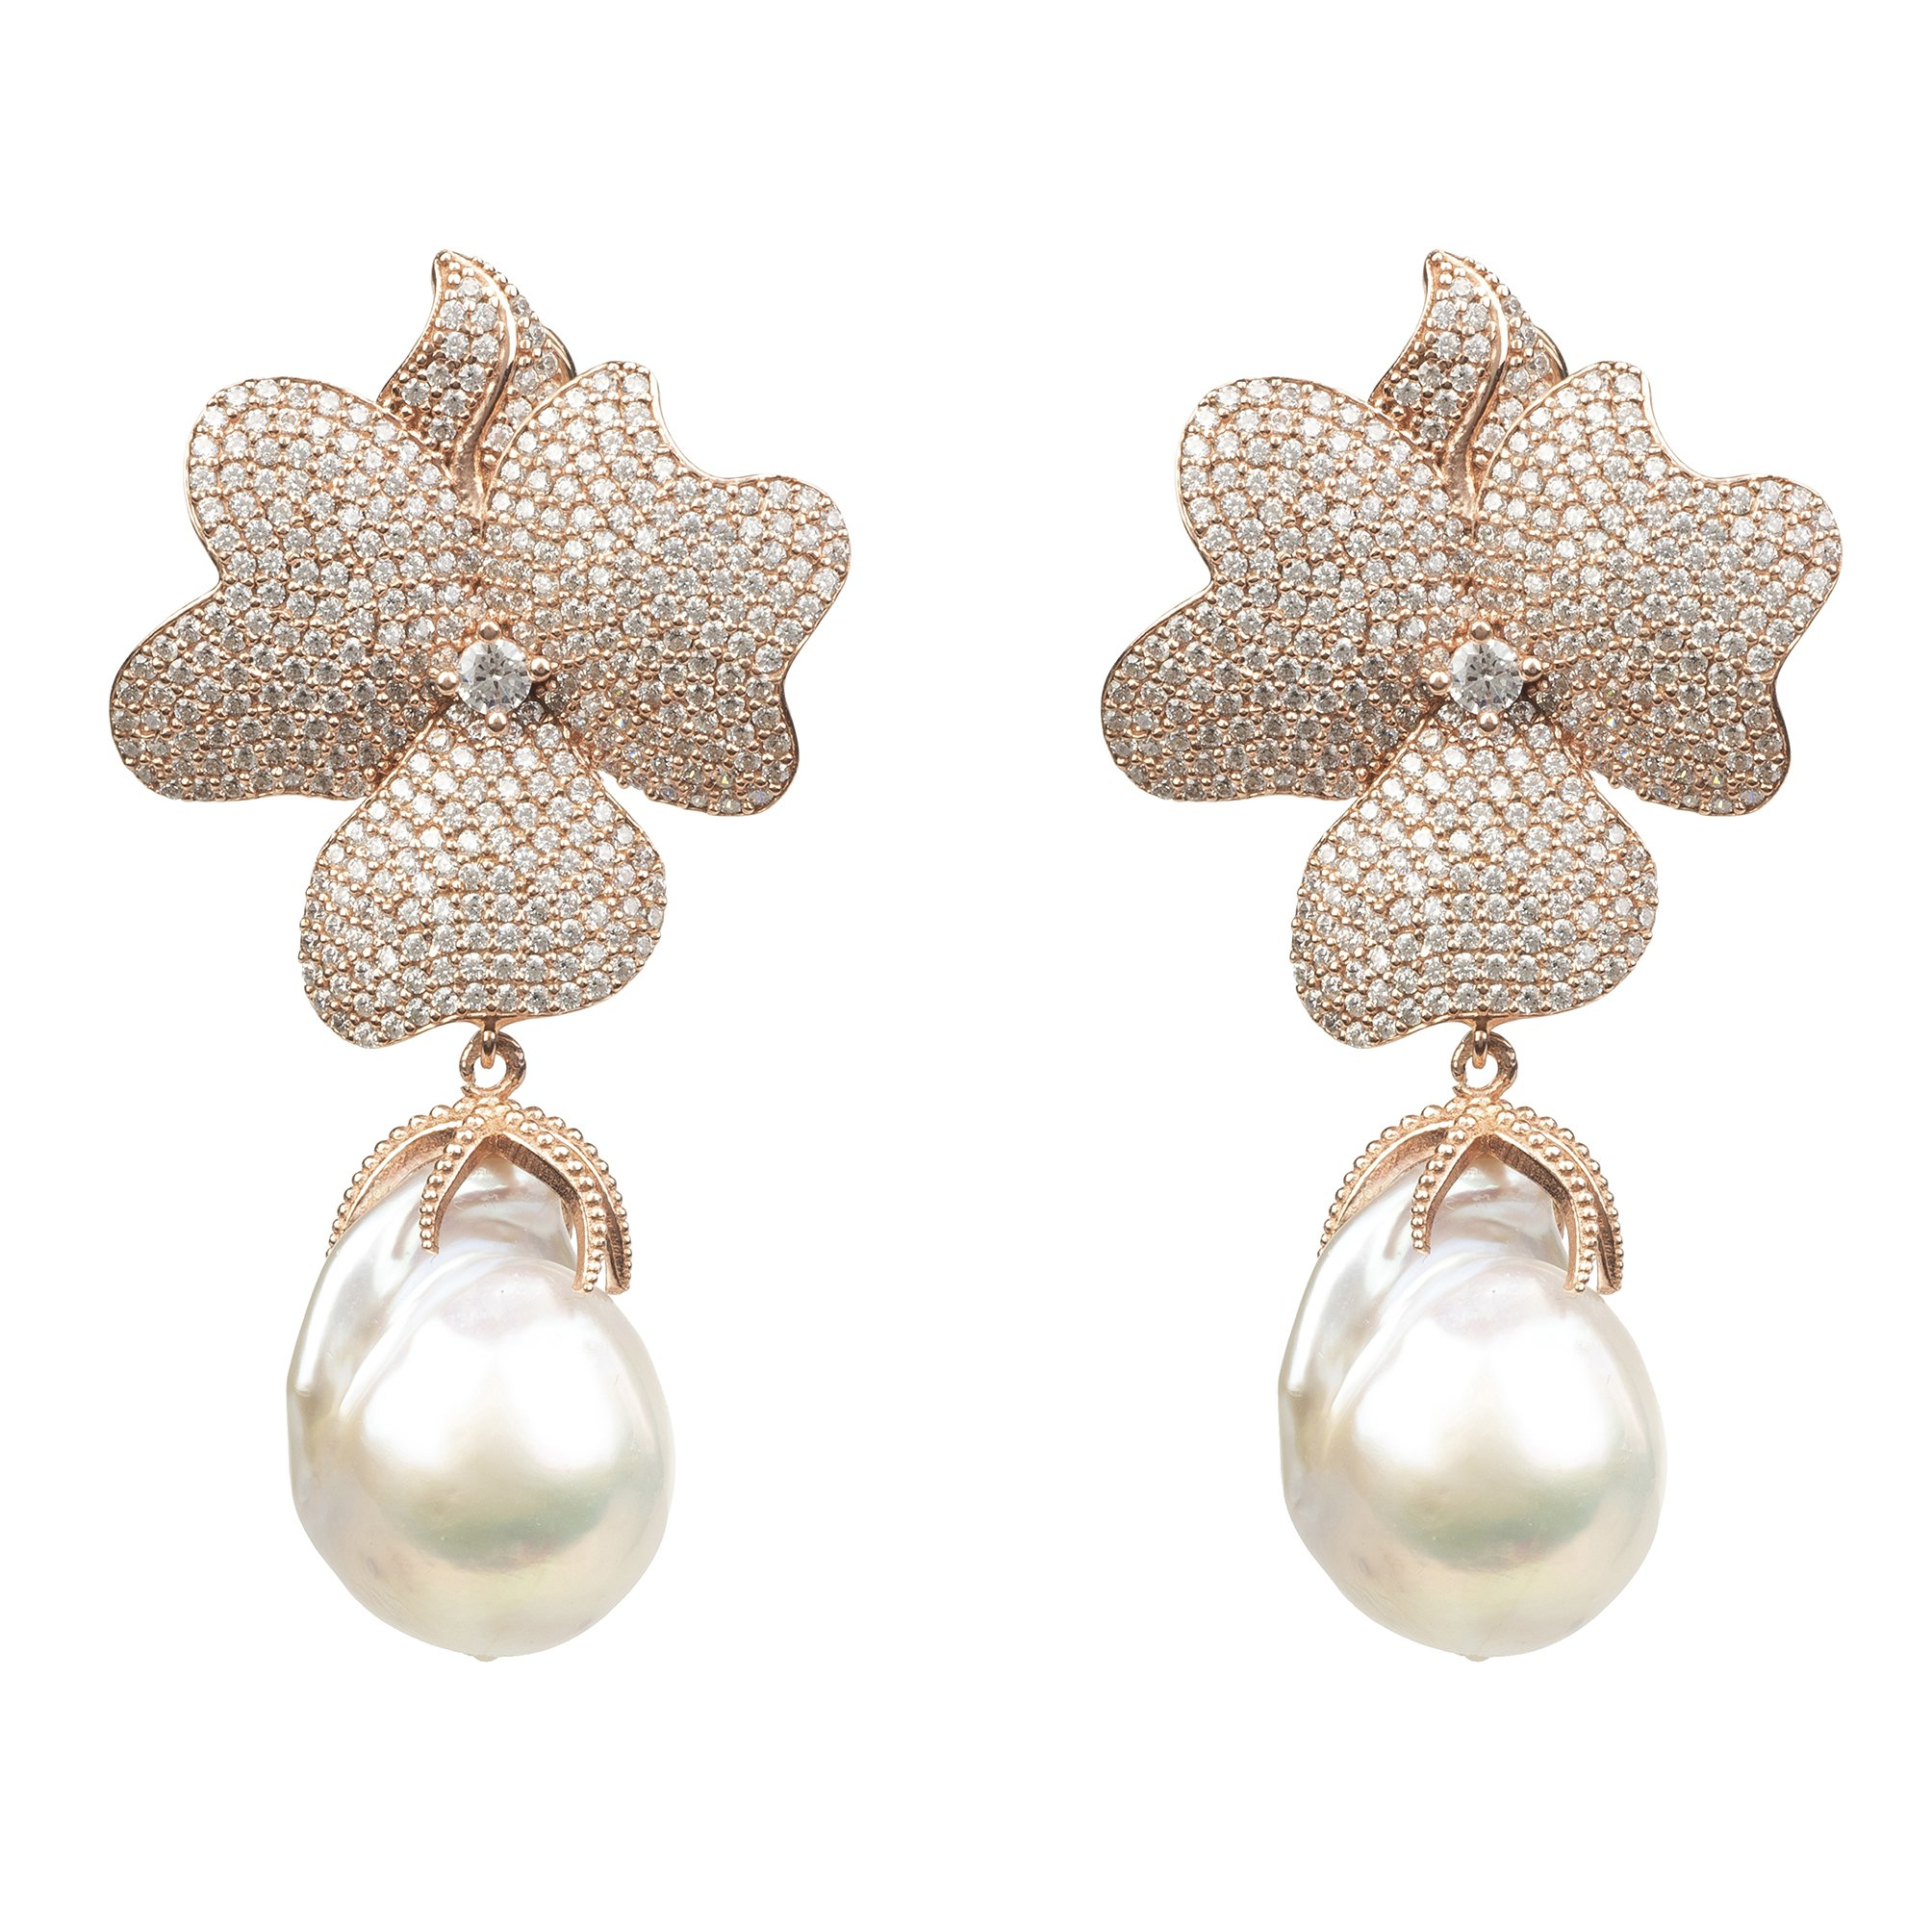 Latelita London White Flower Baroque Pearl Drop Earrings Rosegold